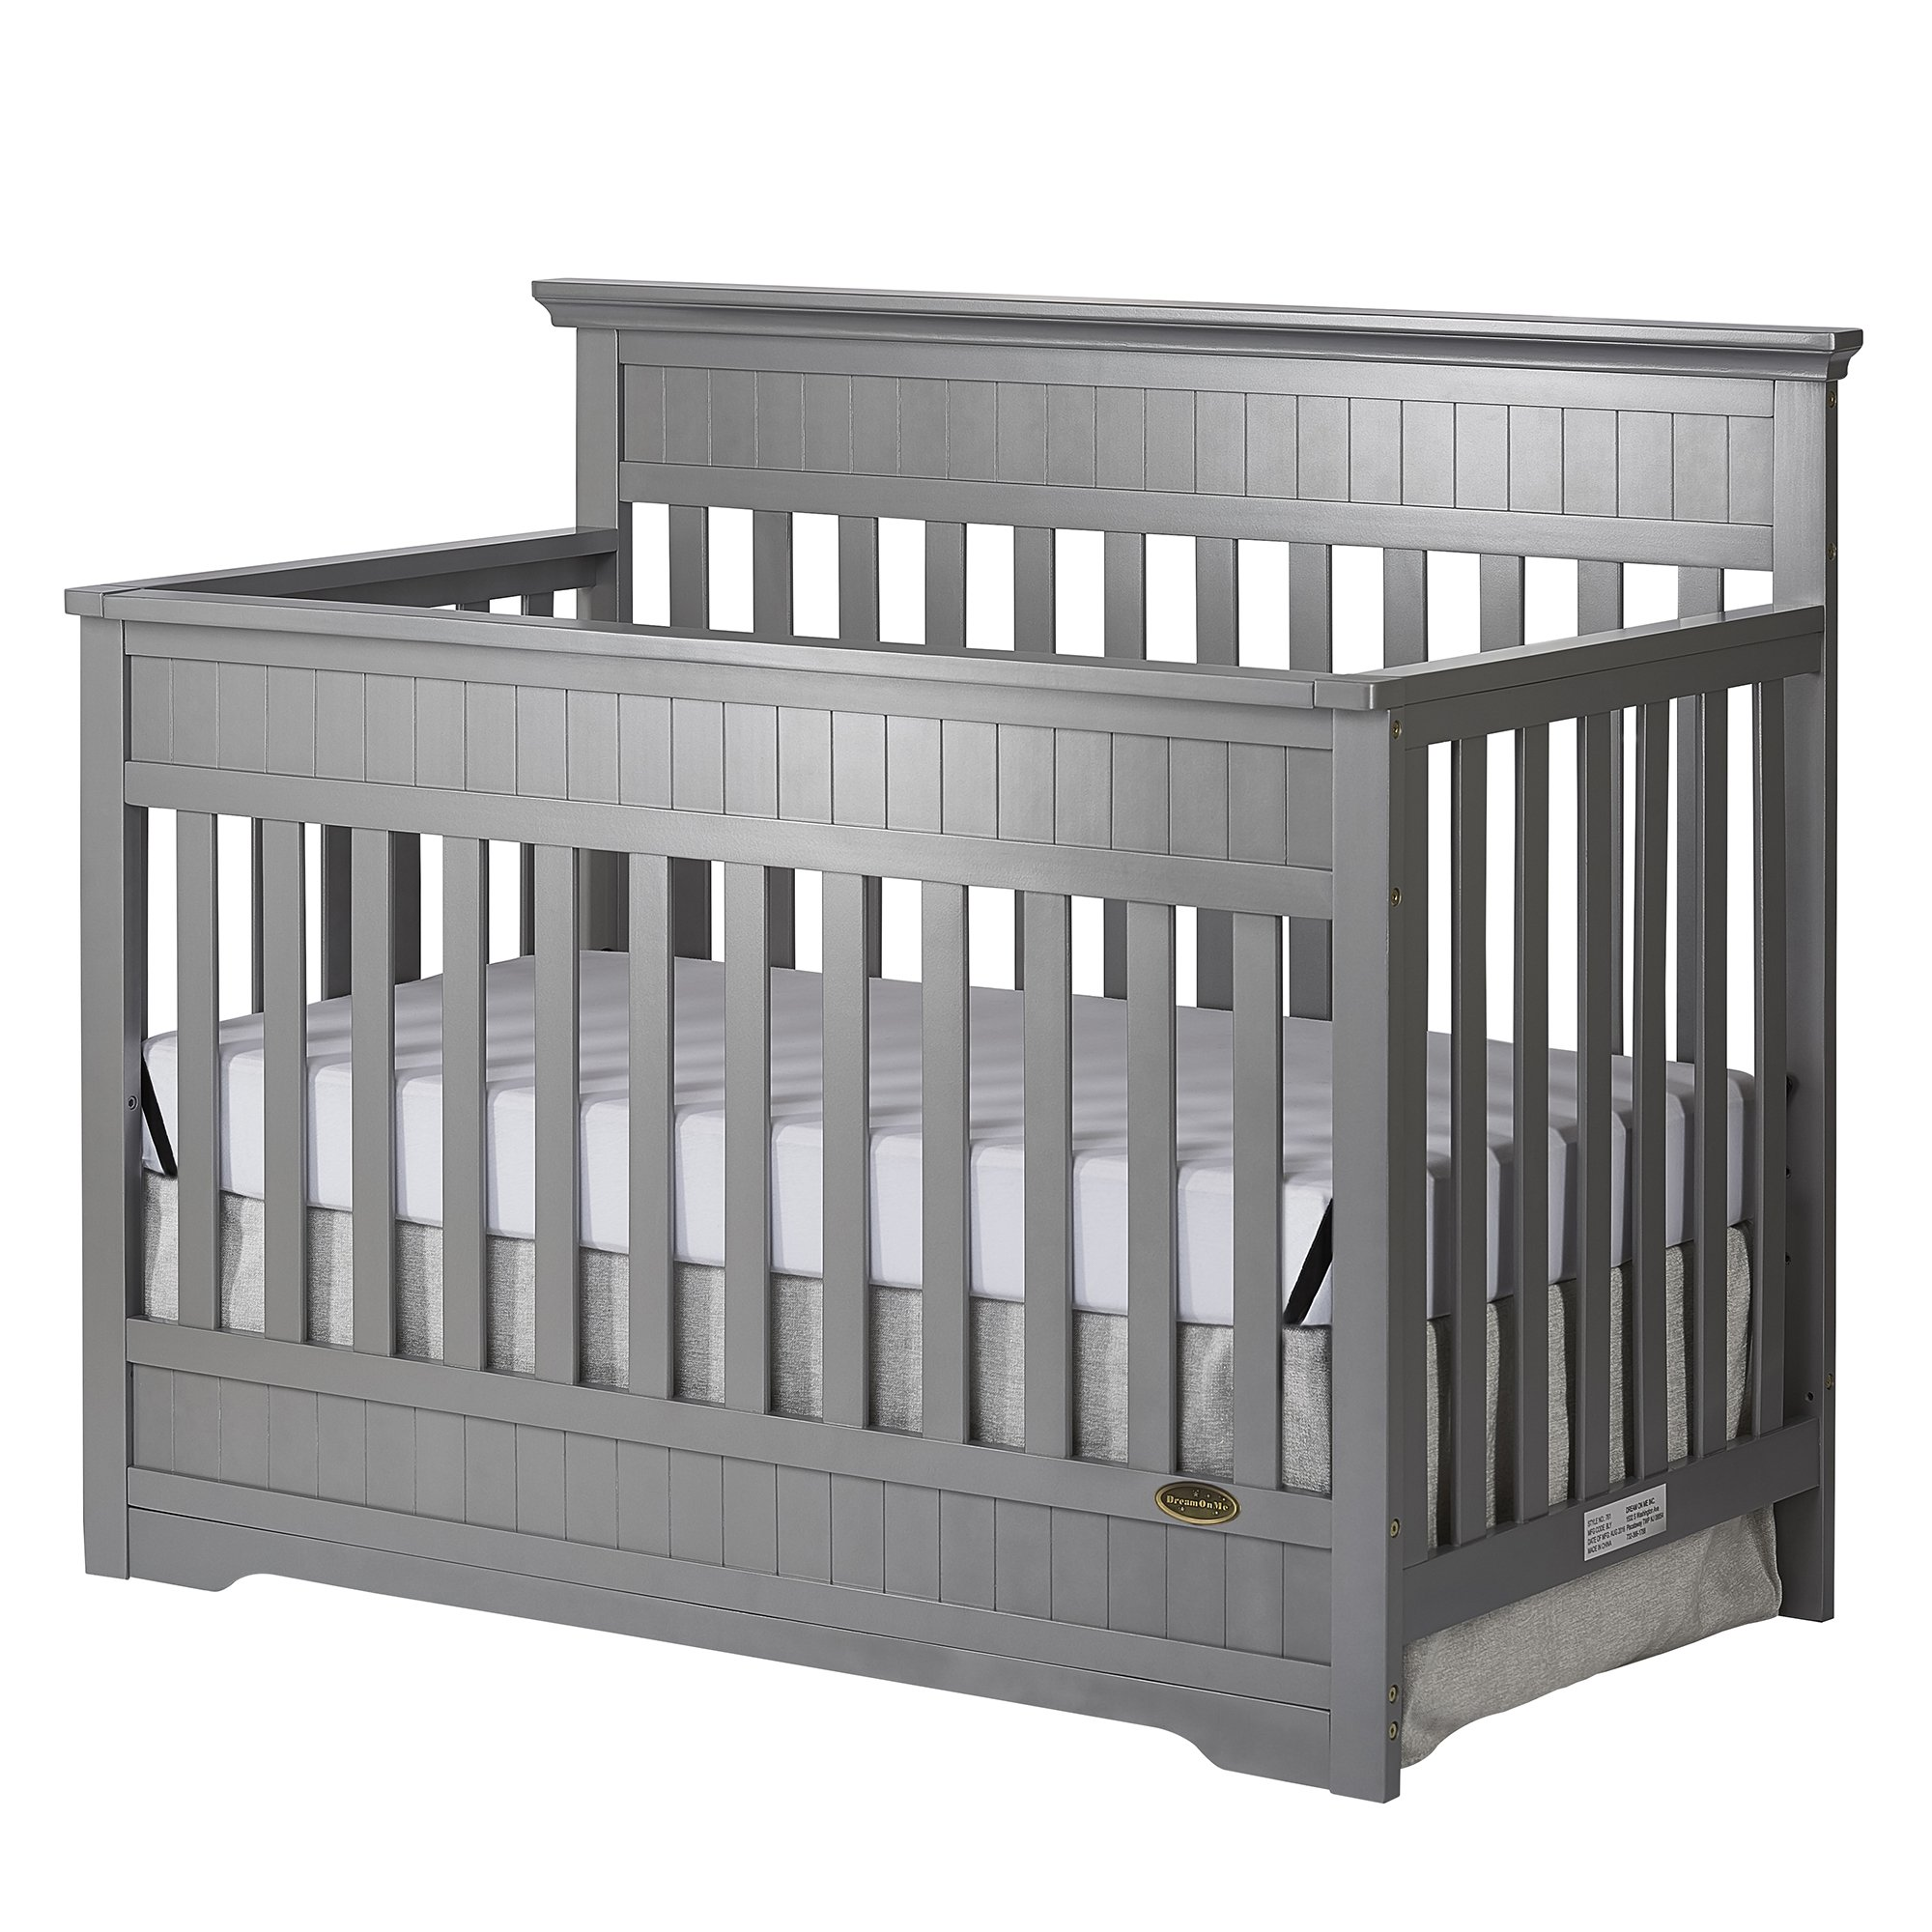 Dream On Me Chesapeake 5-In-1 Convertible Crib, Storm Grey